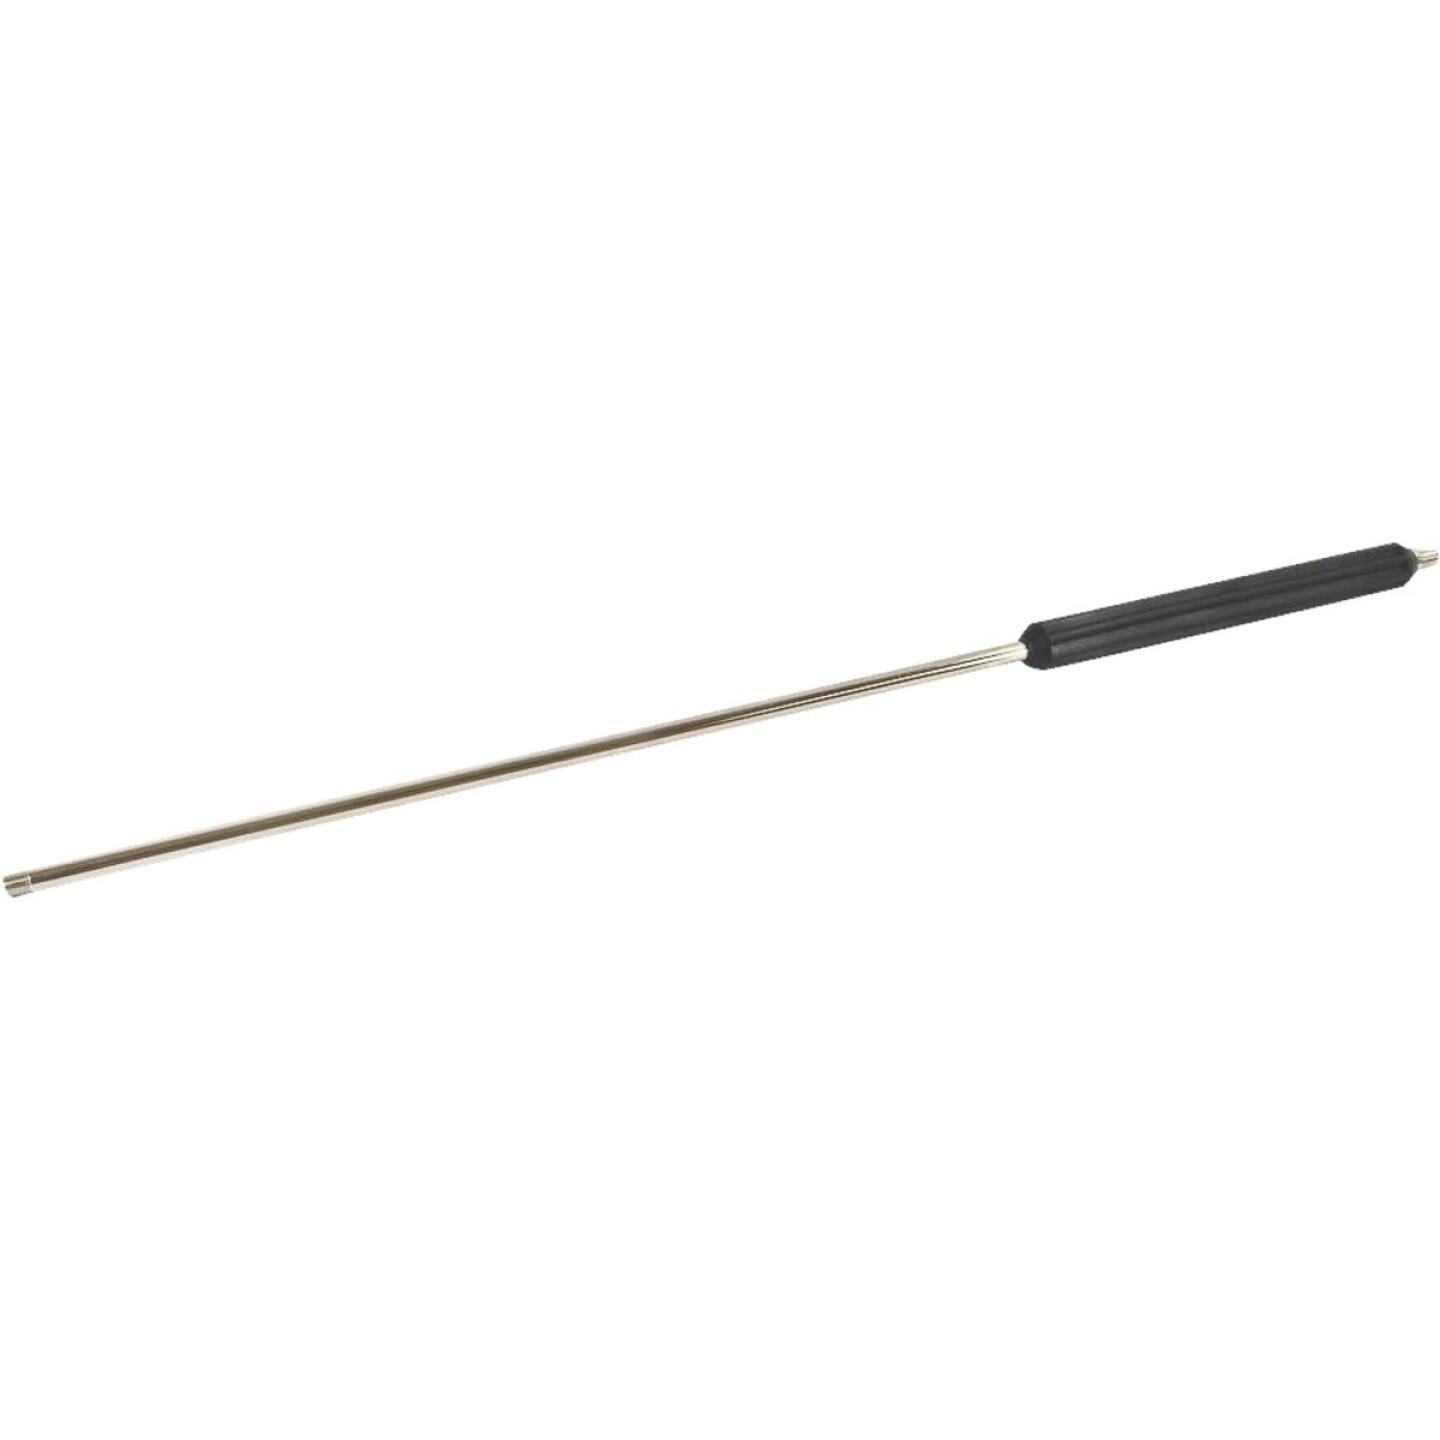 Forney 36 In. Pressure Washer Wand/Lance Image 1